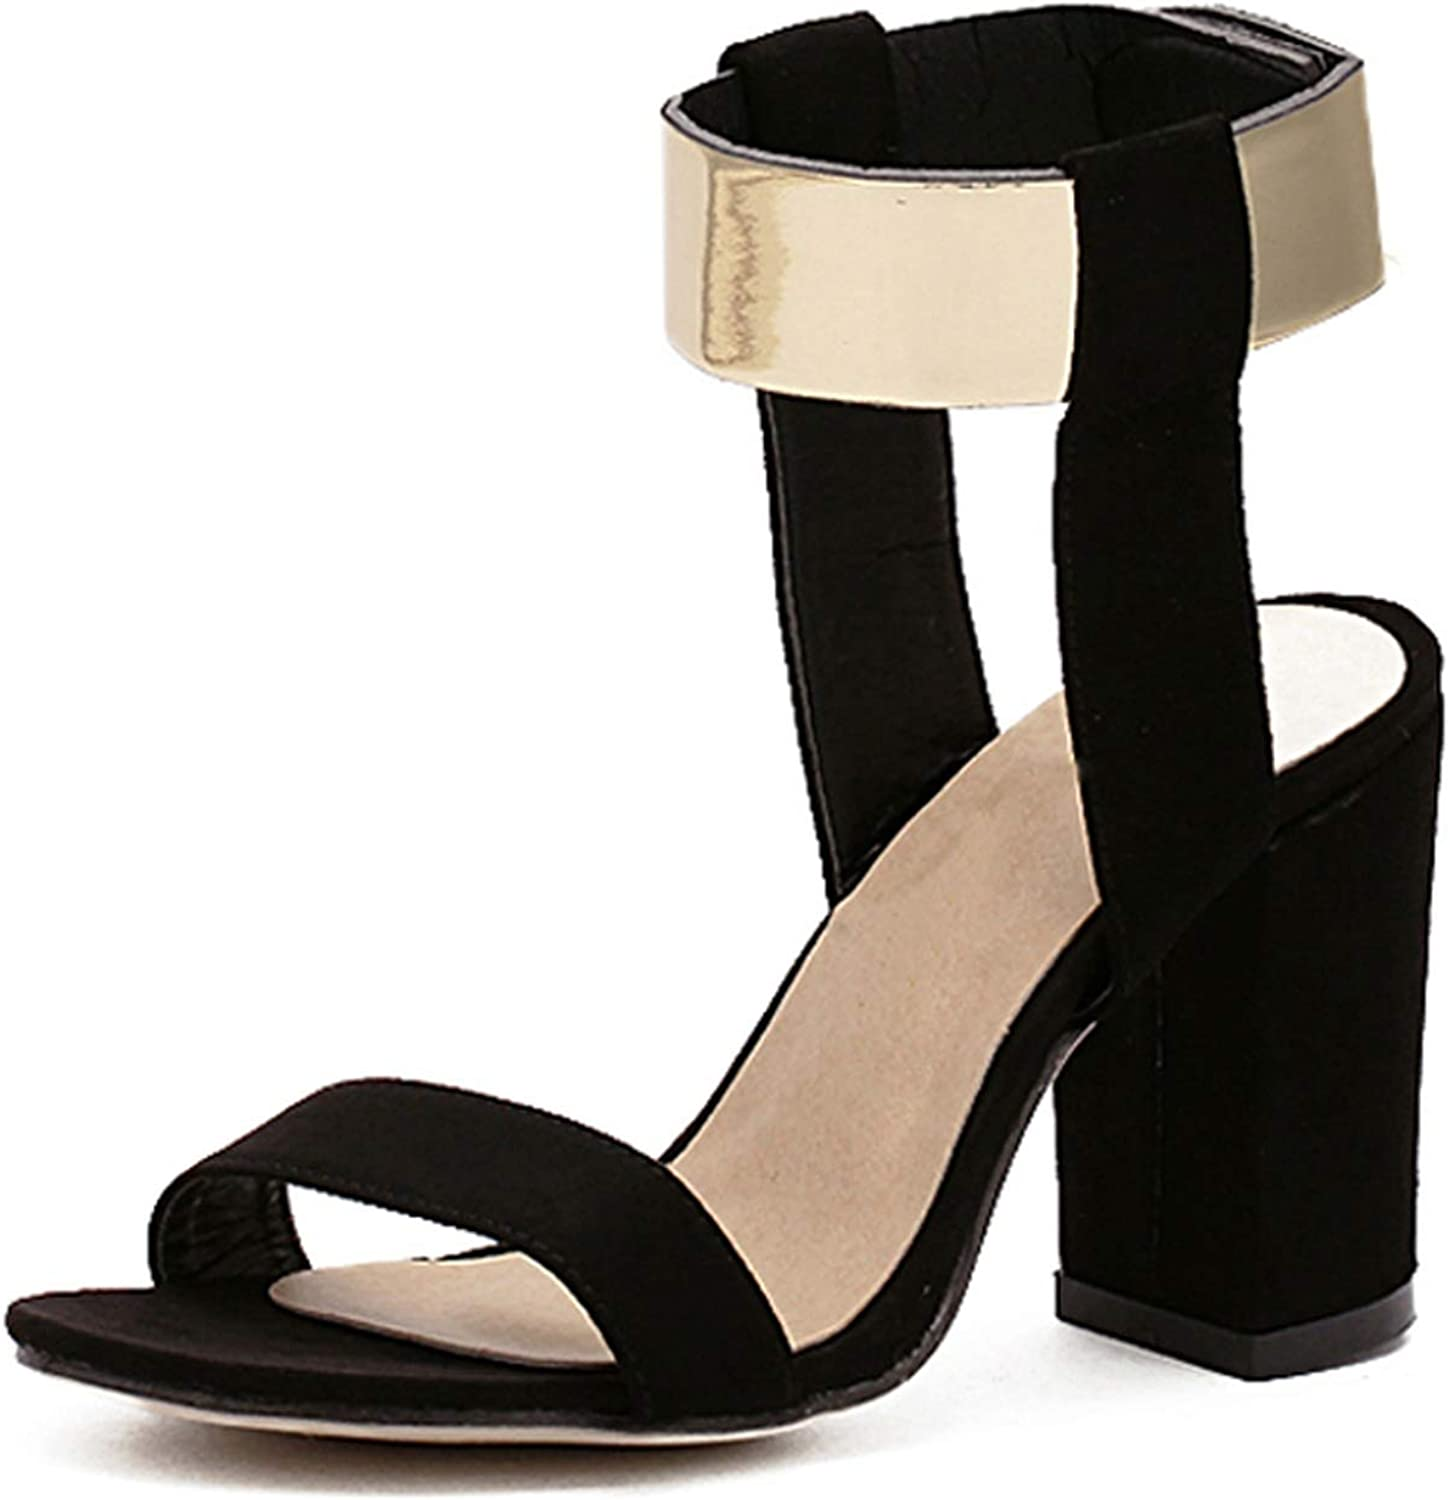 Ches Women Summer Sandals Open Toe Ankle Strap Chunky Block High Heels Work Office Lady Career shoes Pumps Size 35-40